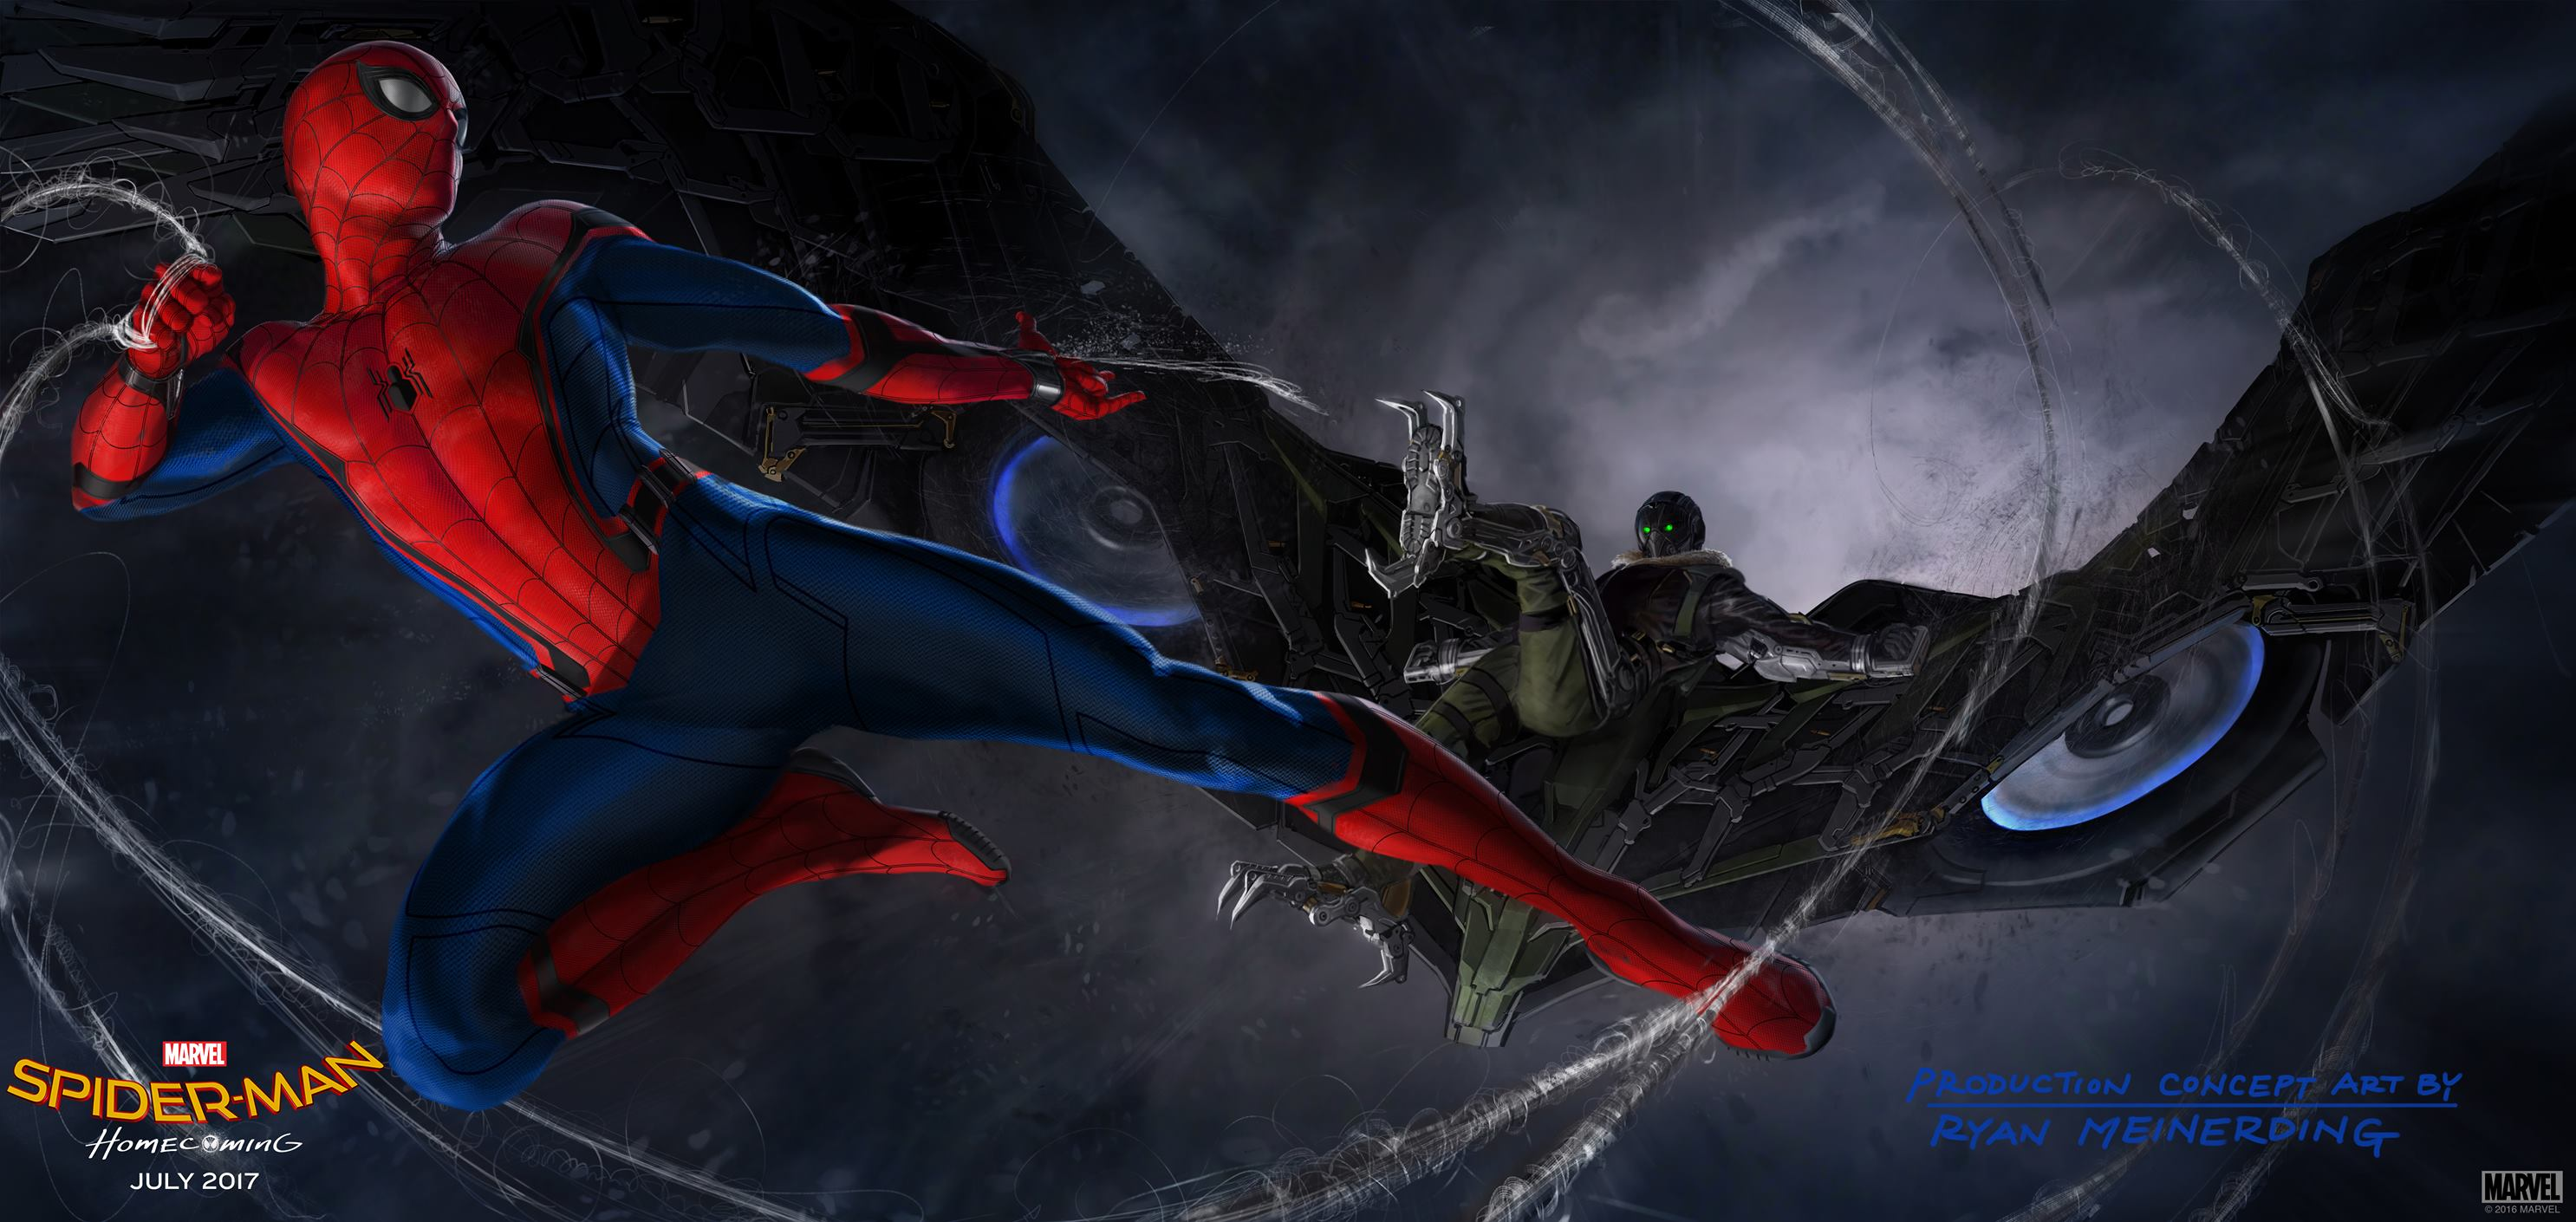 spiderman_homecoming_conceptart_vulture.png